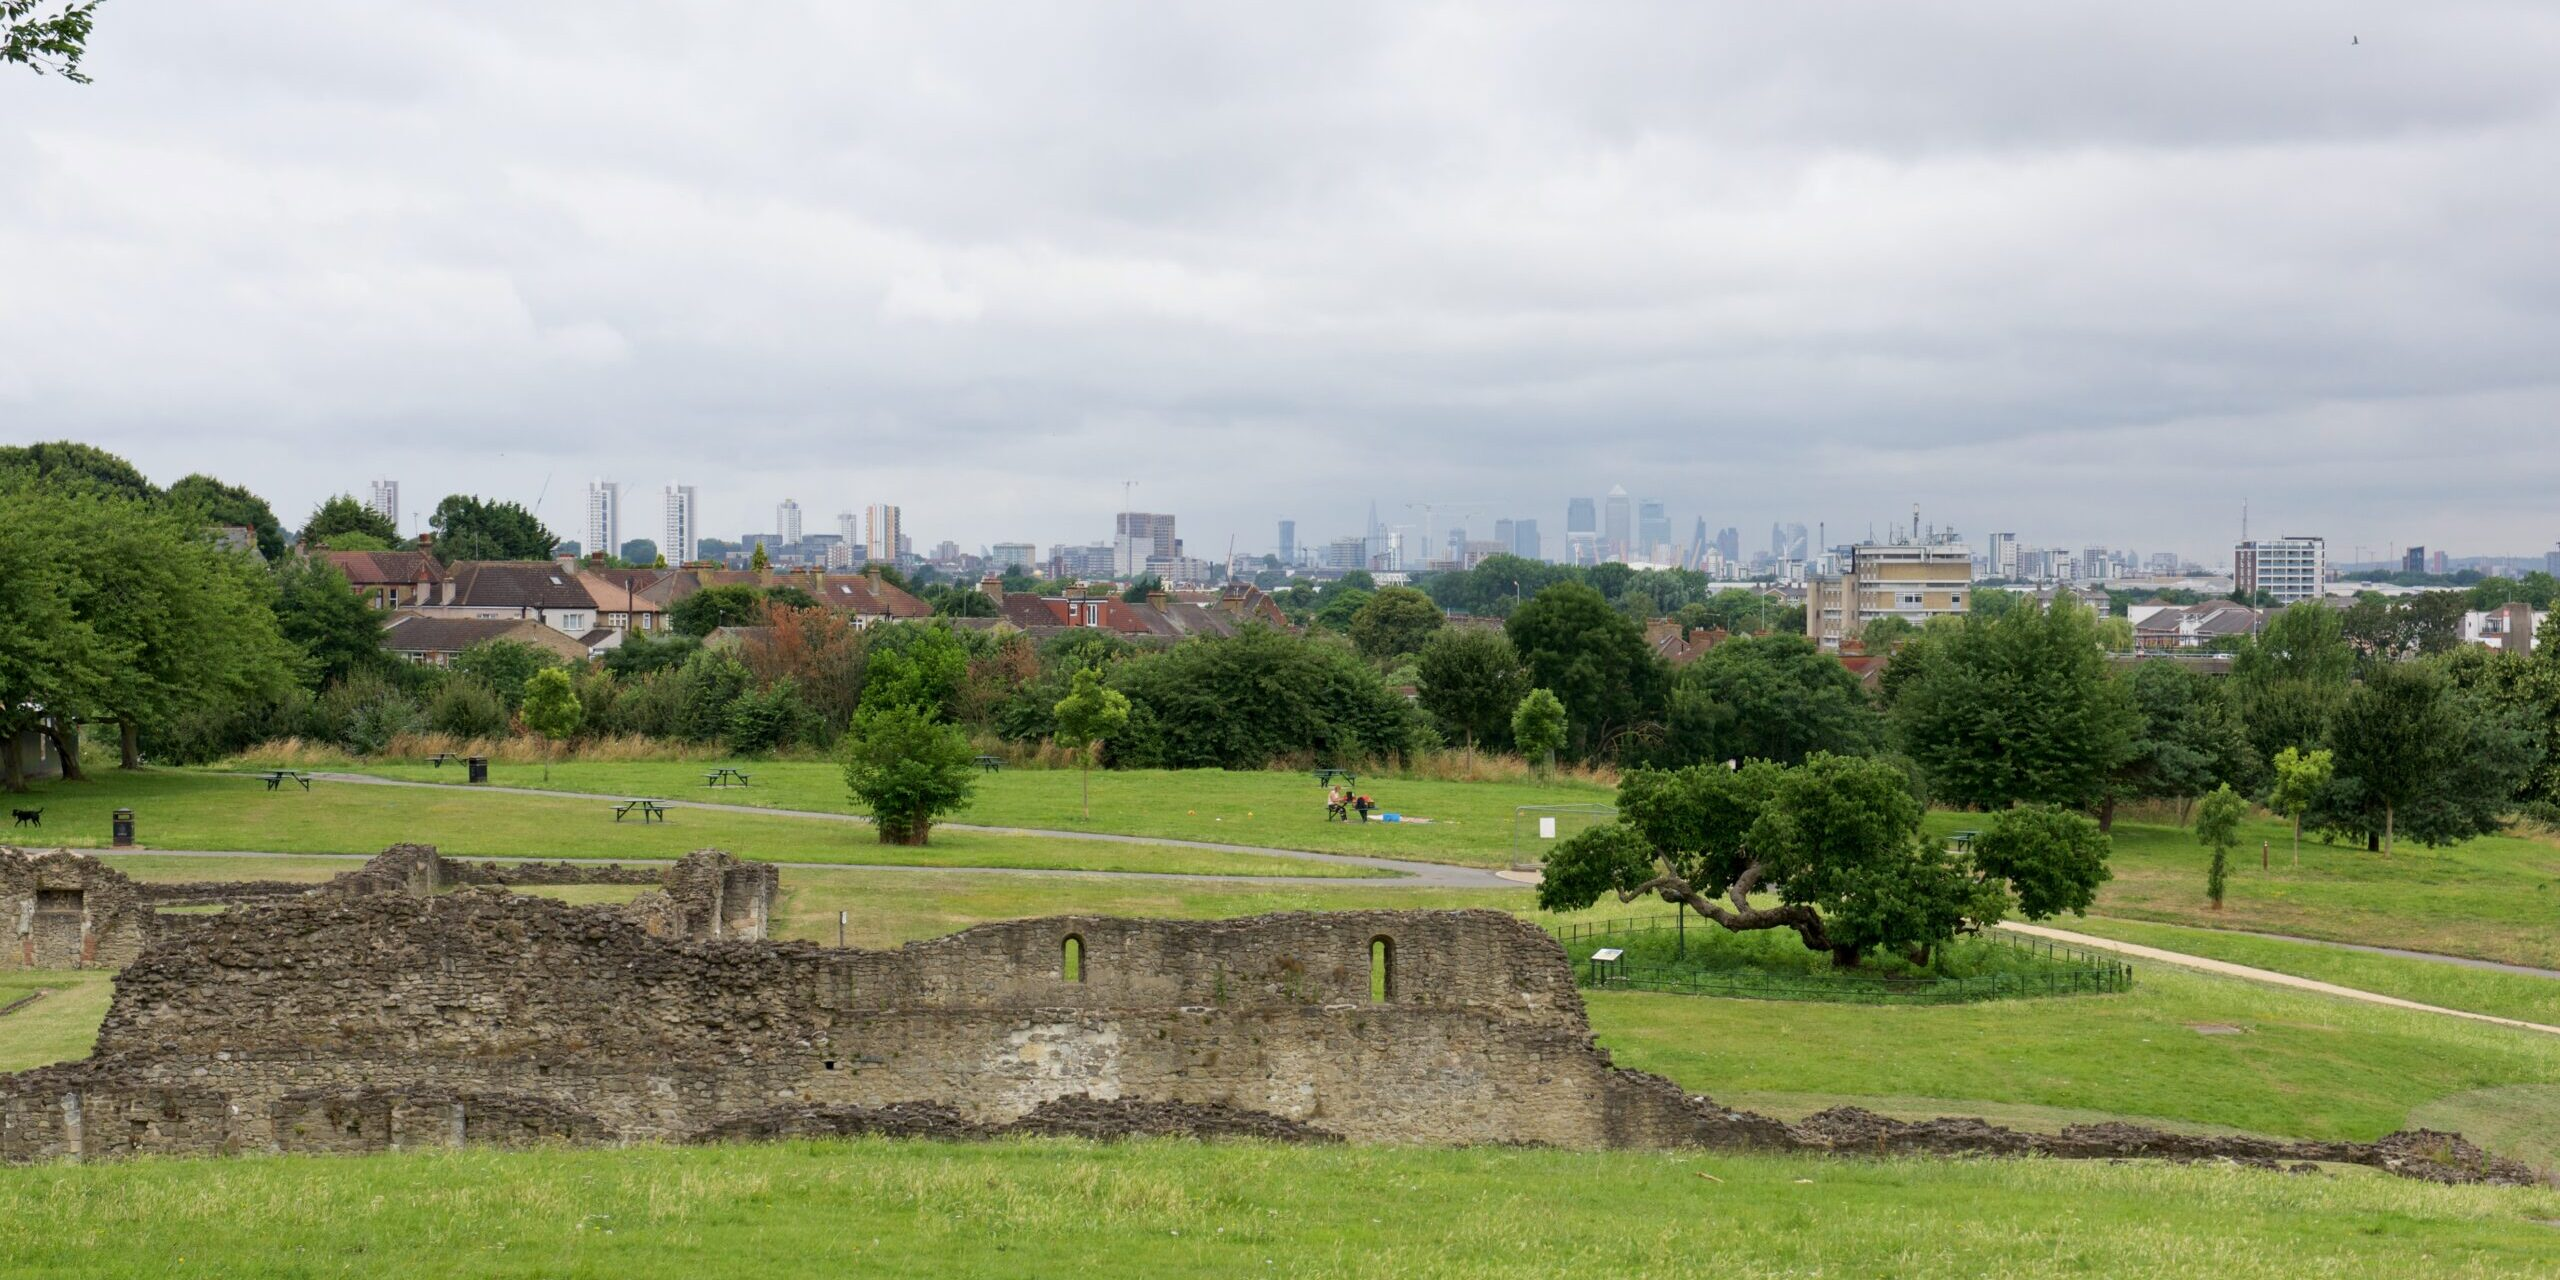 Lesnes ruins and city of London